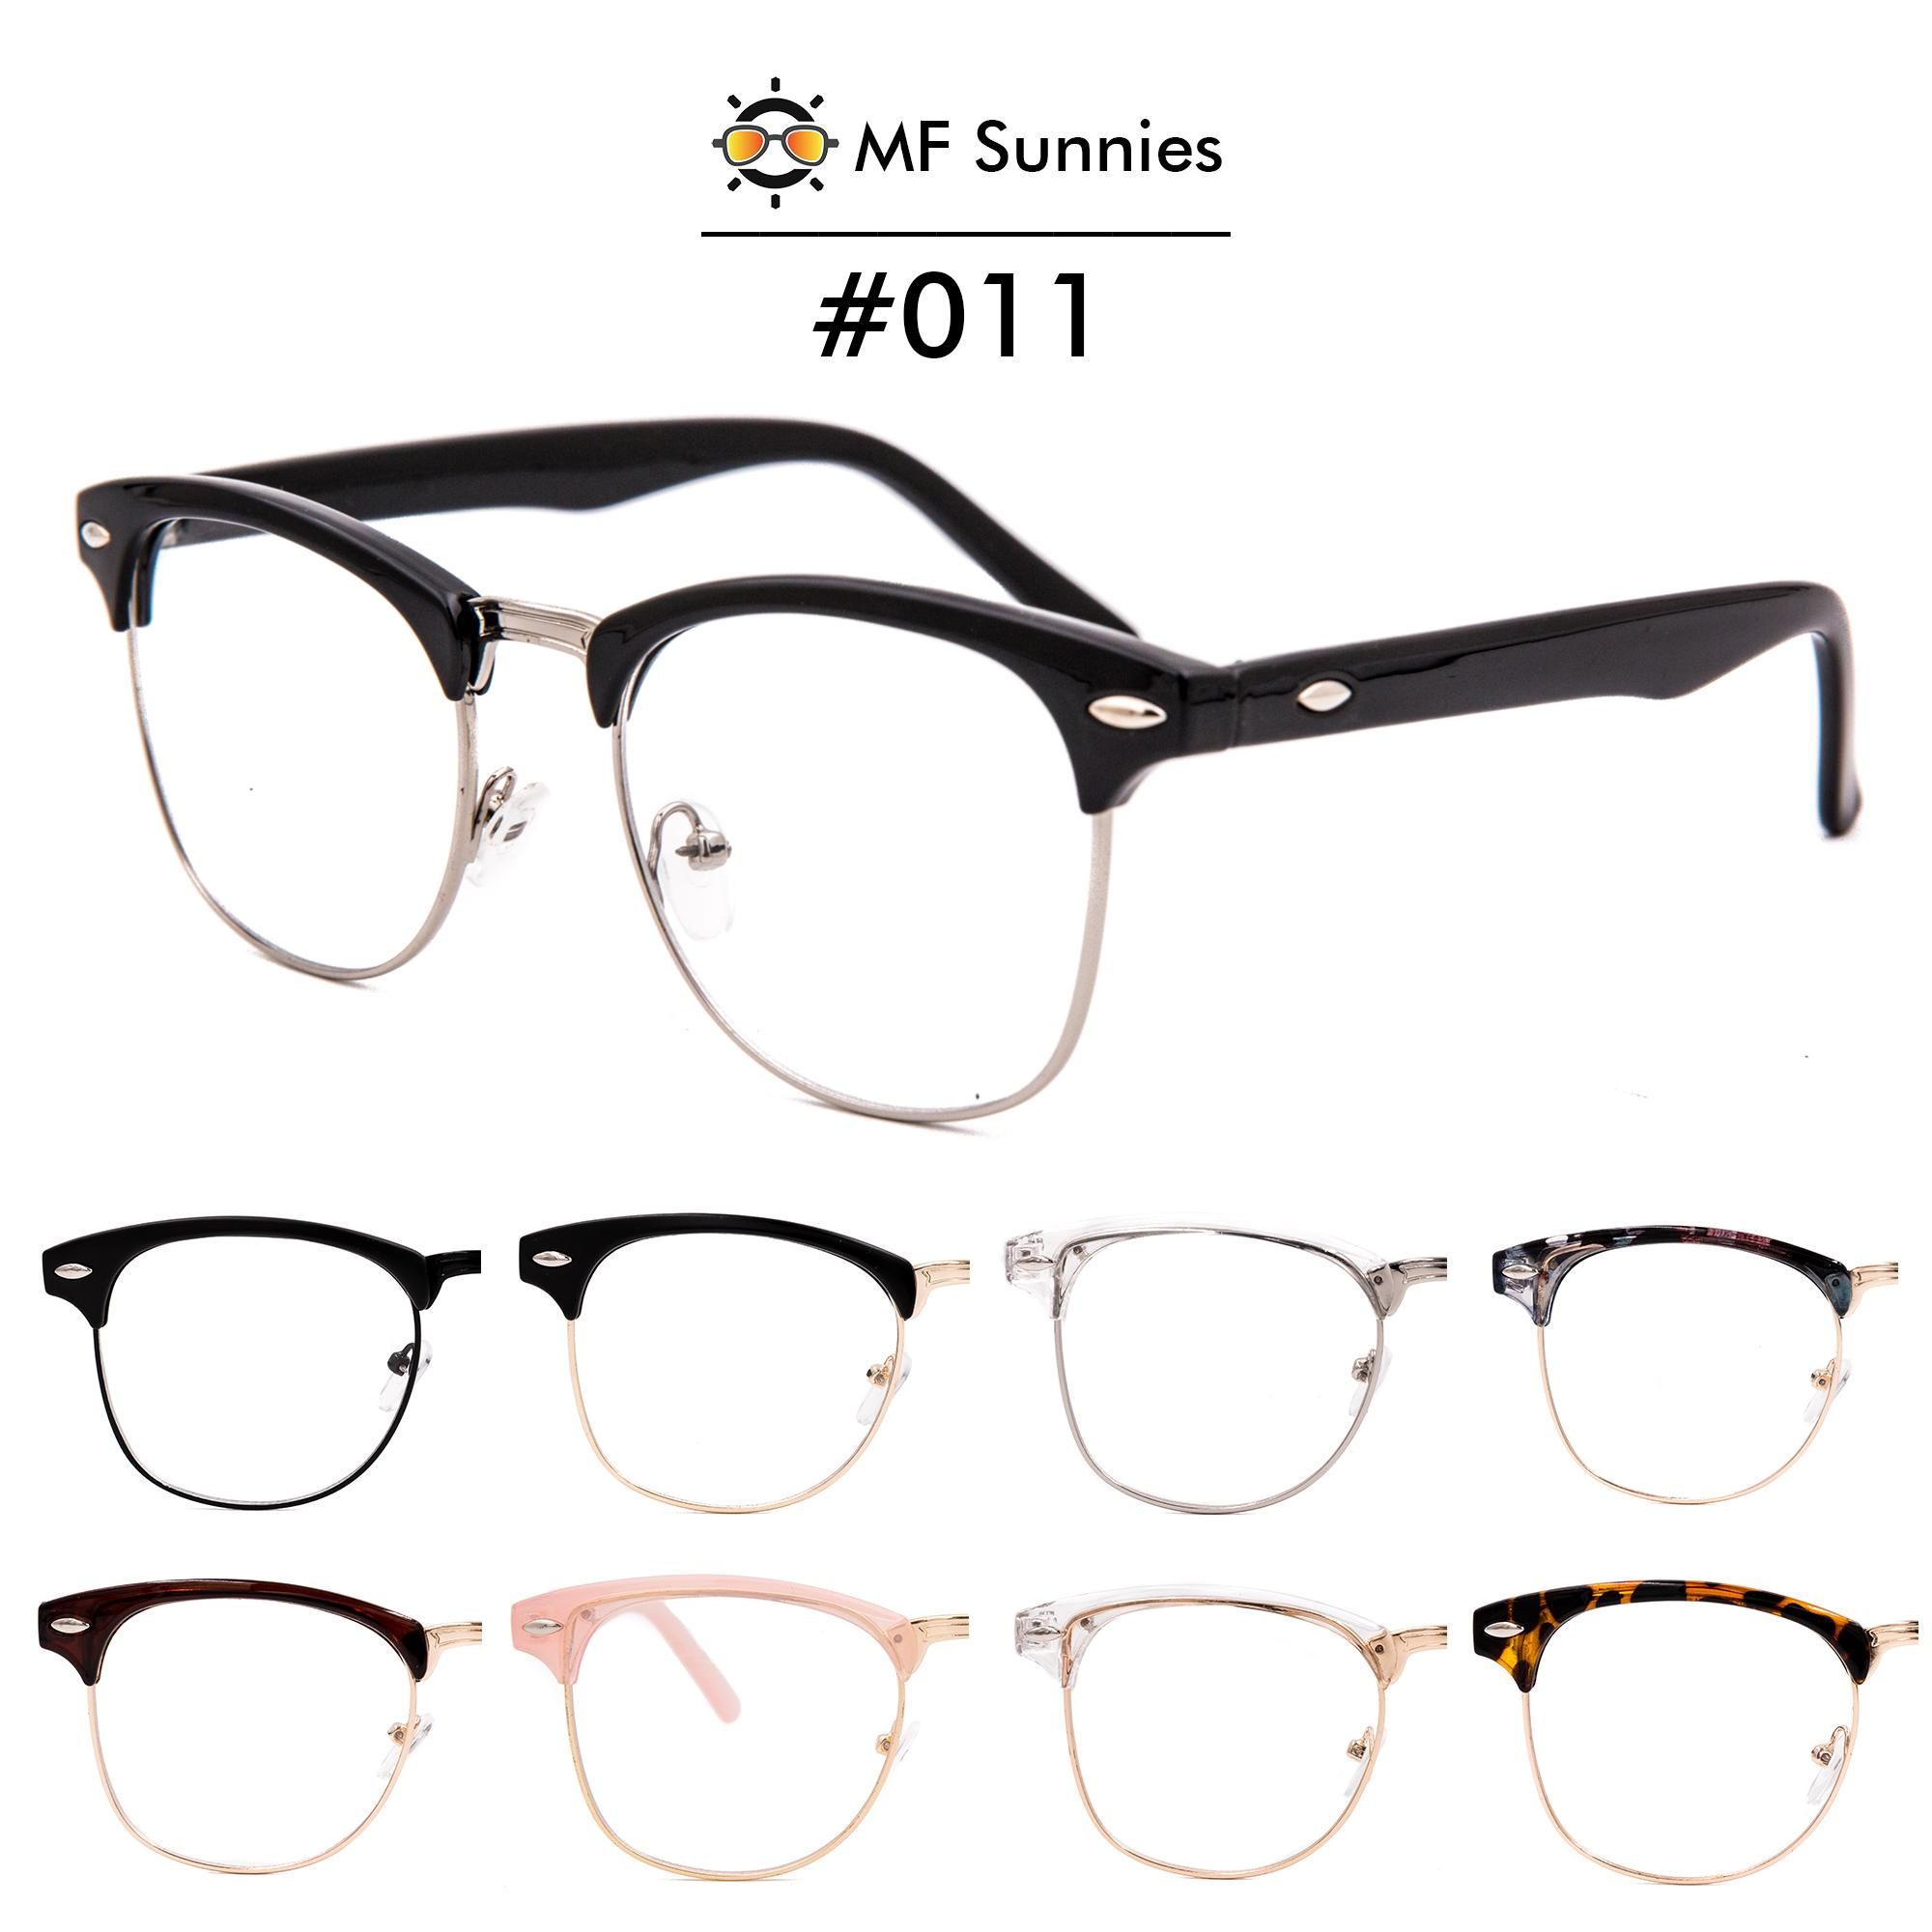 027380c6cb Eyeglasses for sale - Reading Glasses online brands